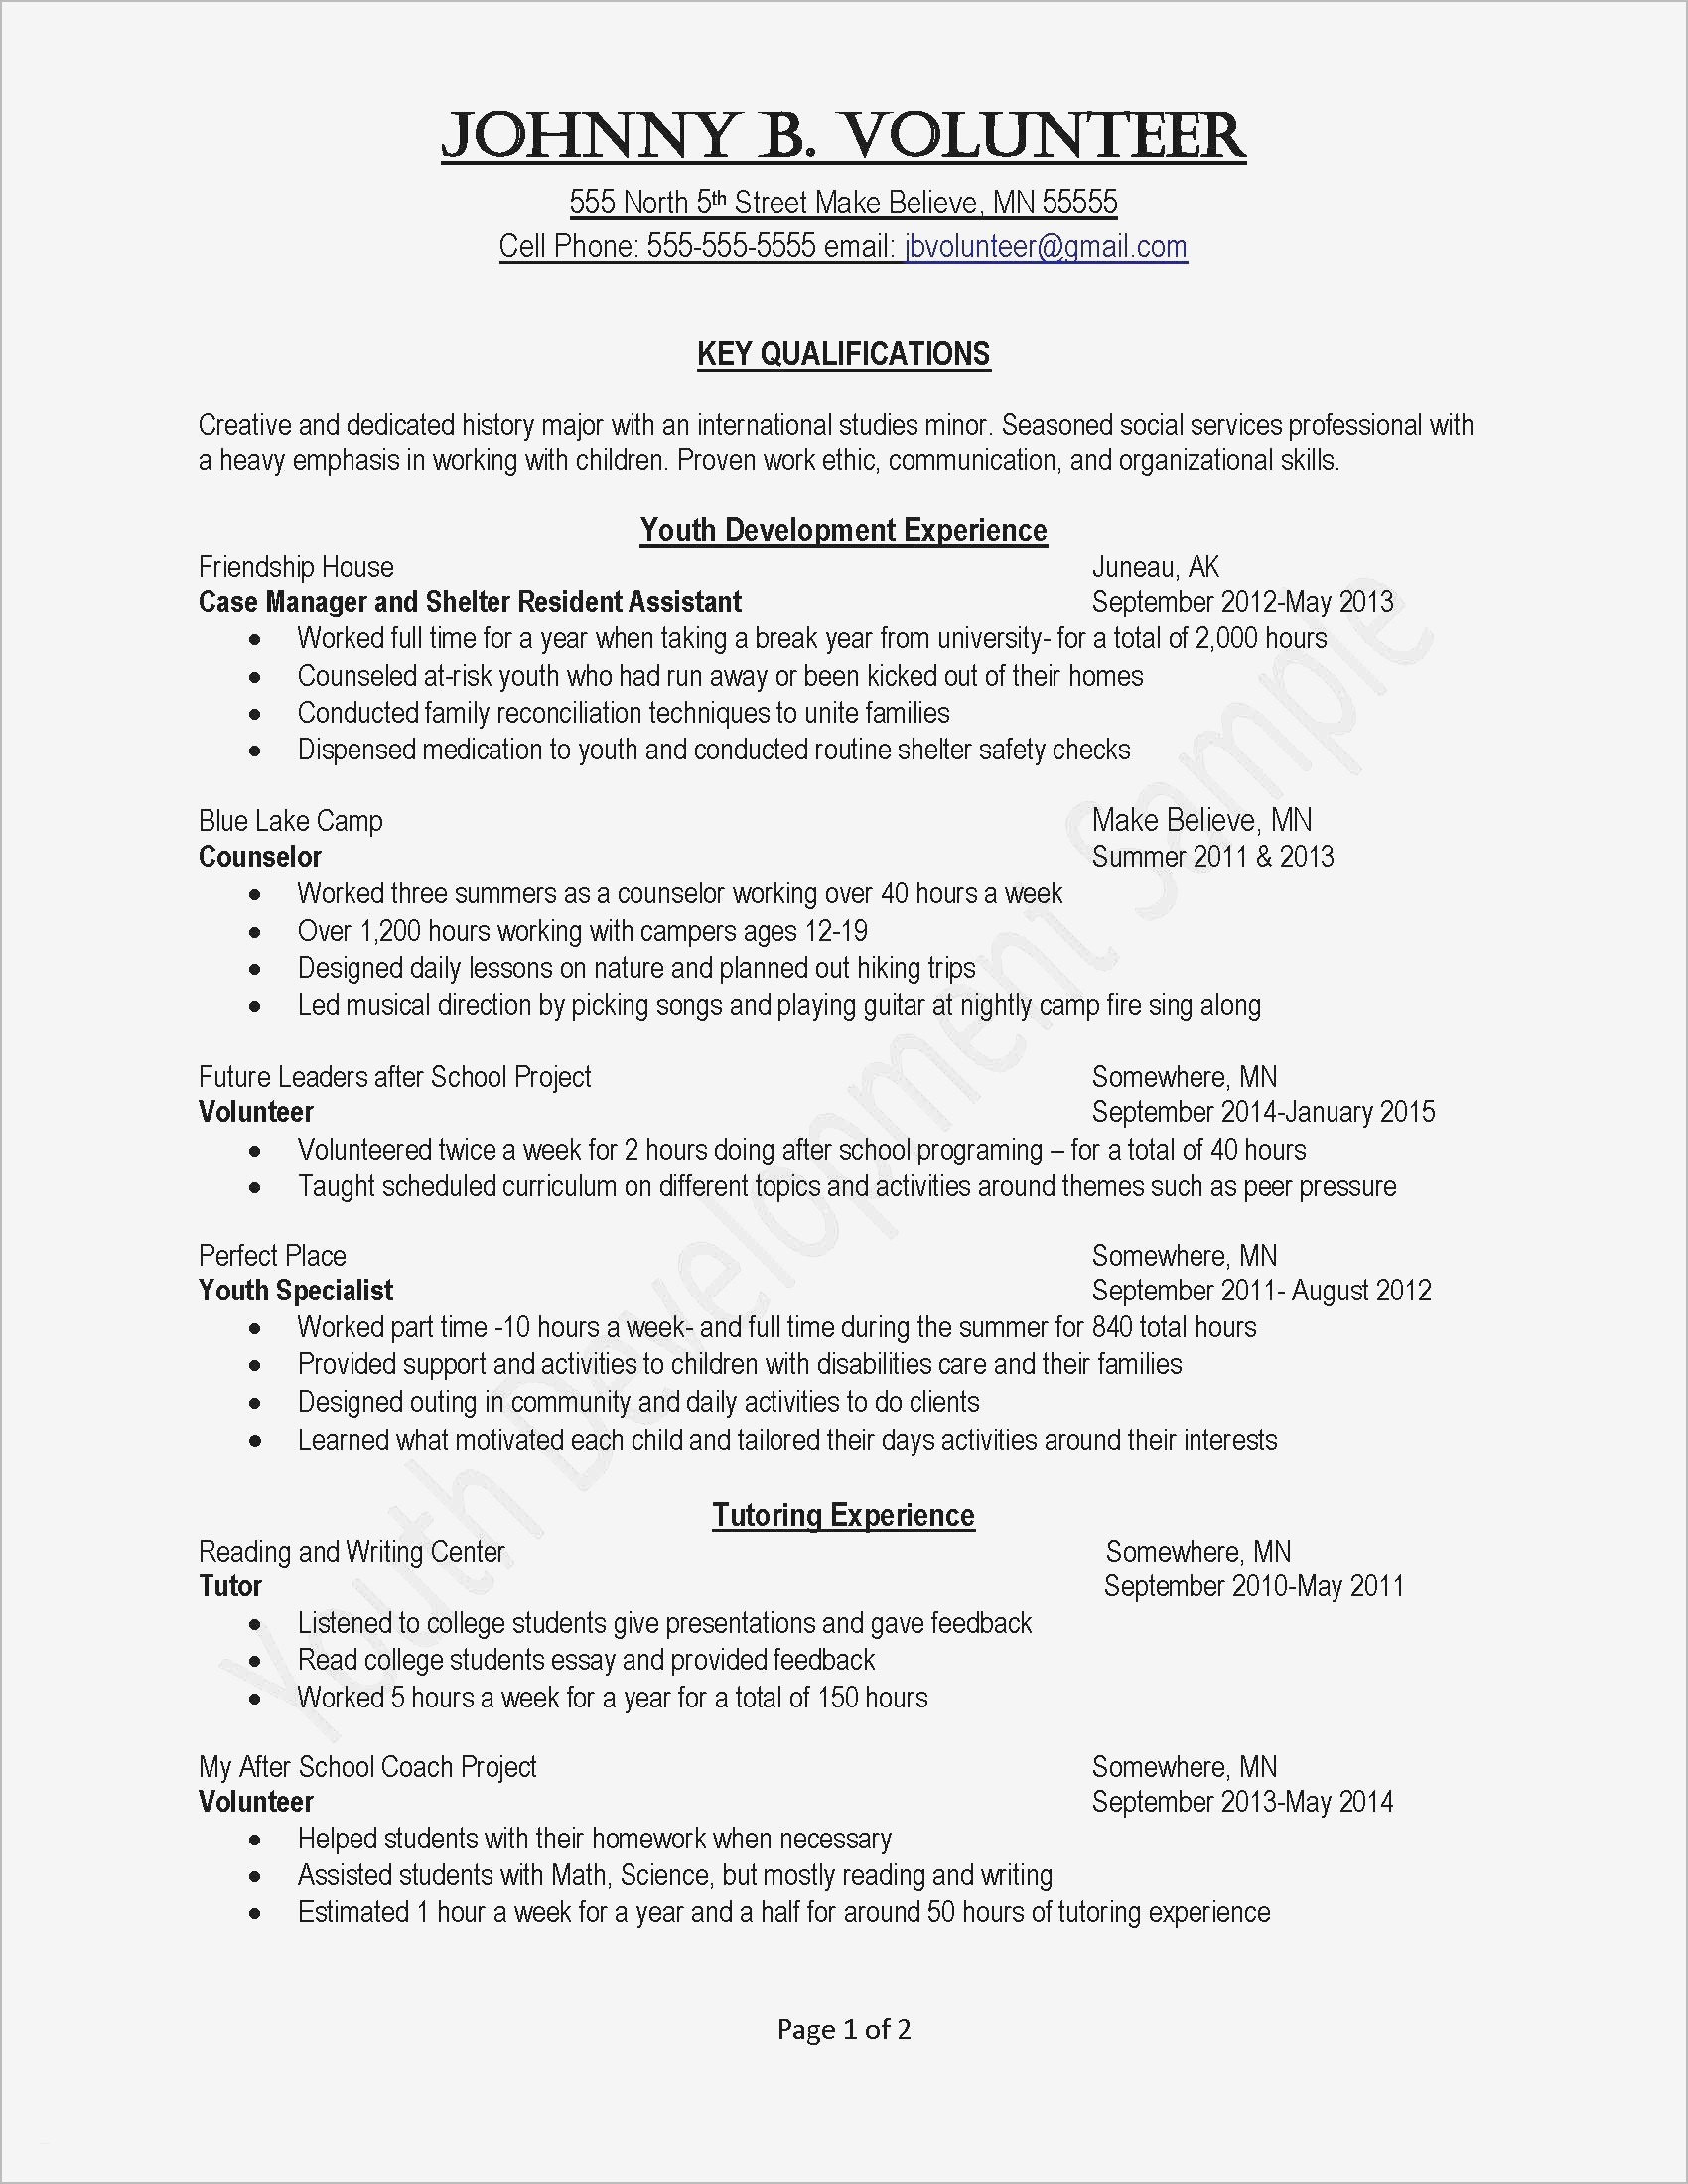 Free Employment Cover Letter Template - Free Cover Letter and Resume Templates Best Job Fer Letter